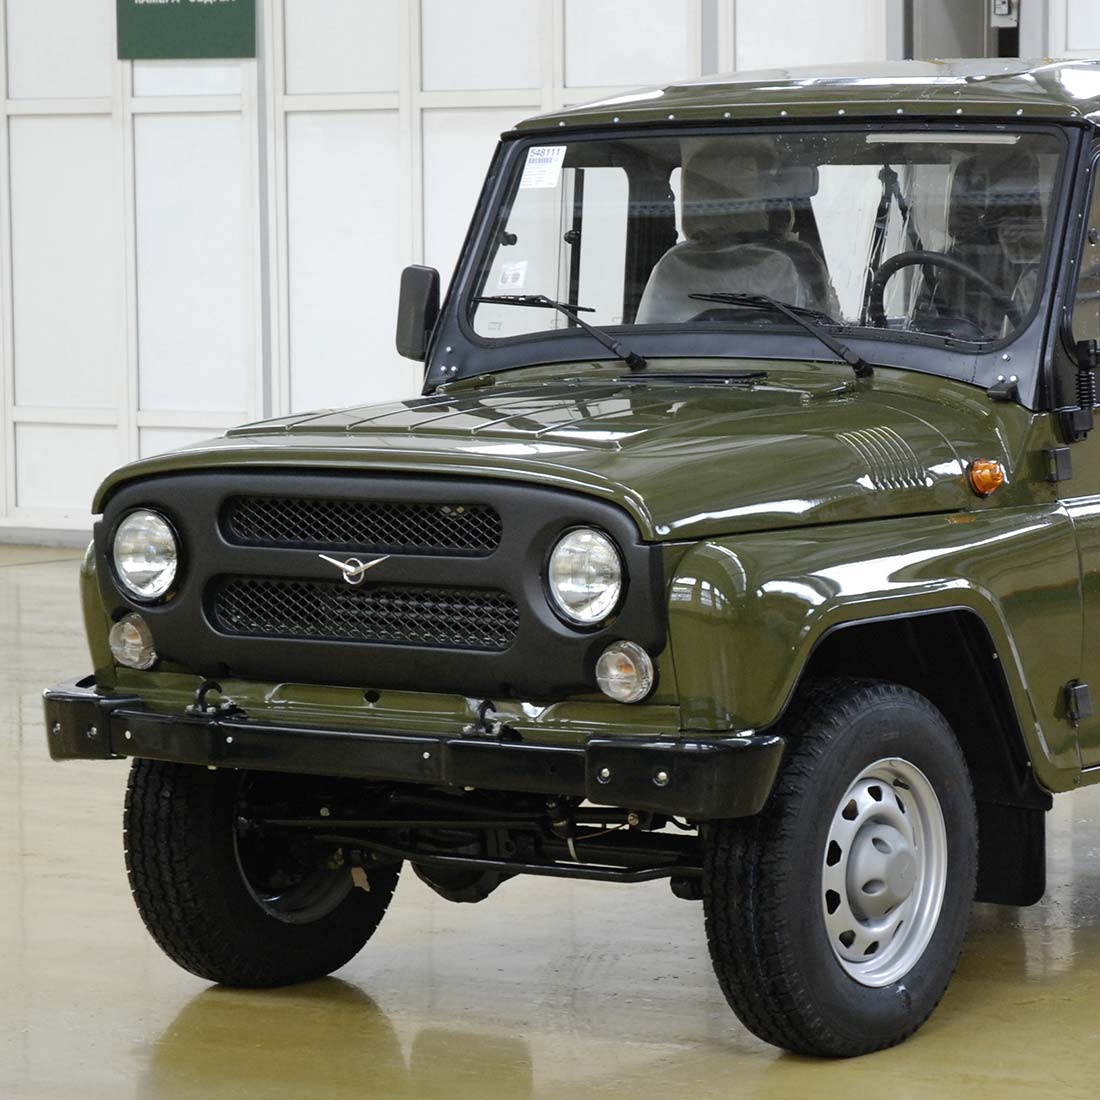 A proposal to create a full-fledged network for the sale, assembly, distribution and maintenance of UAZ vehicles (right-hand drive) in Africa